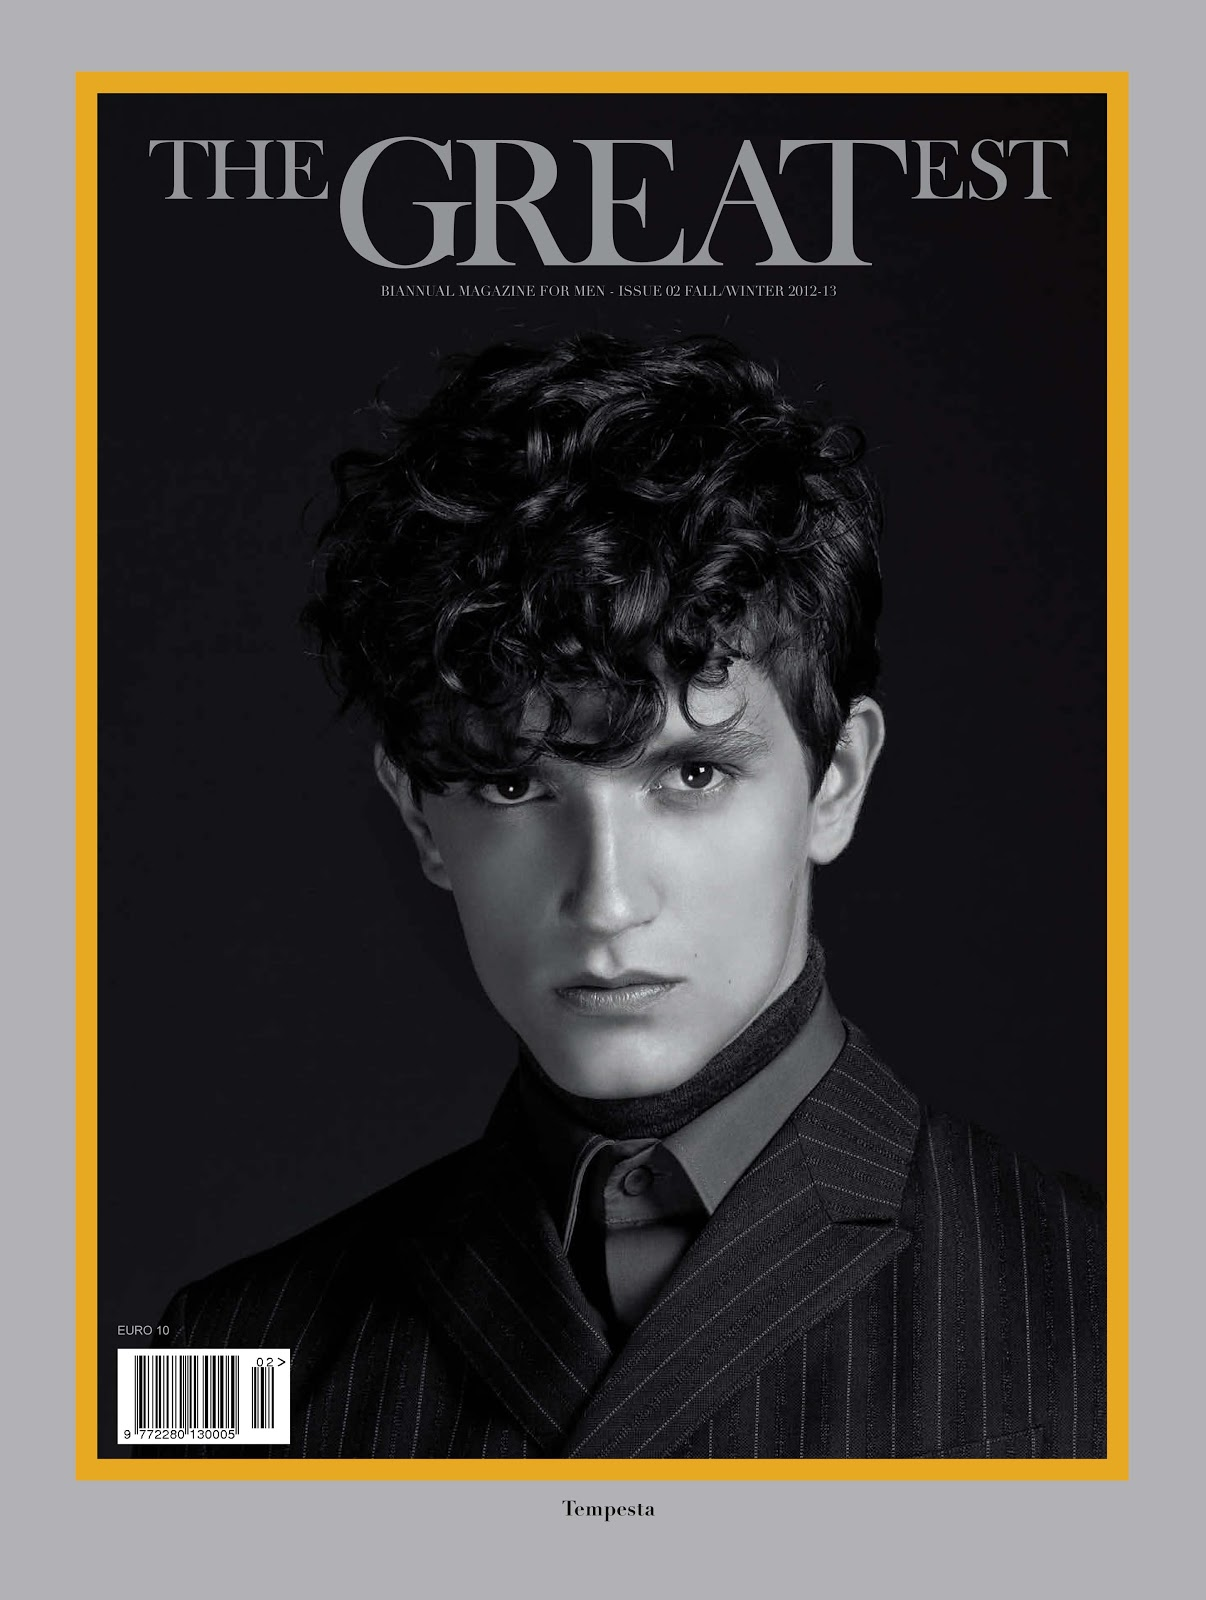 Jakob Wiechmann Strikes a Pose on the Cover of The Greatest #2